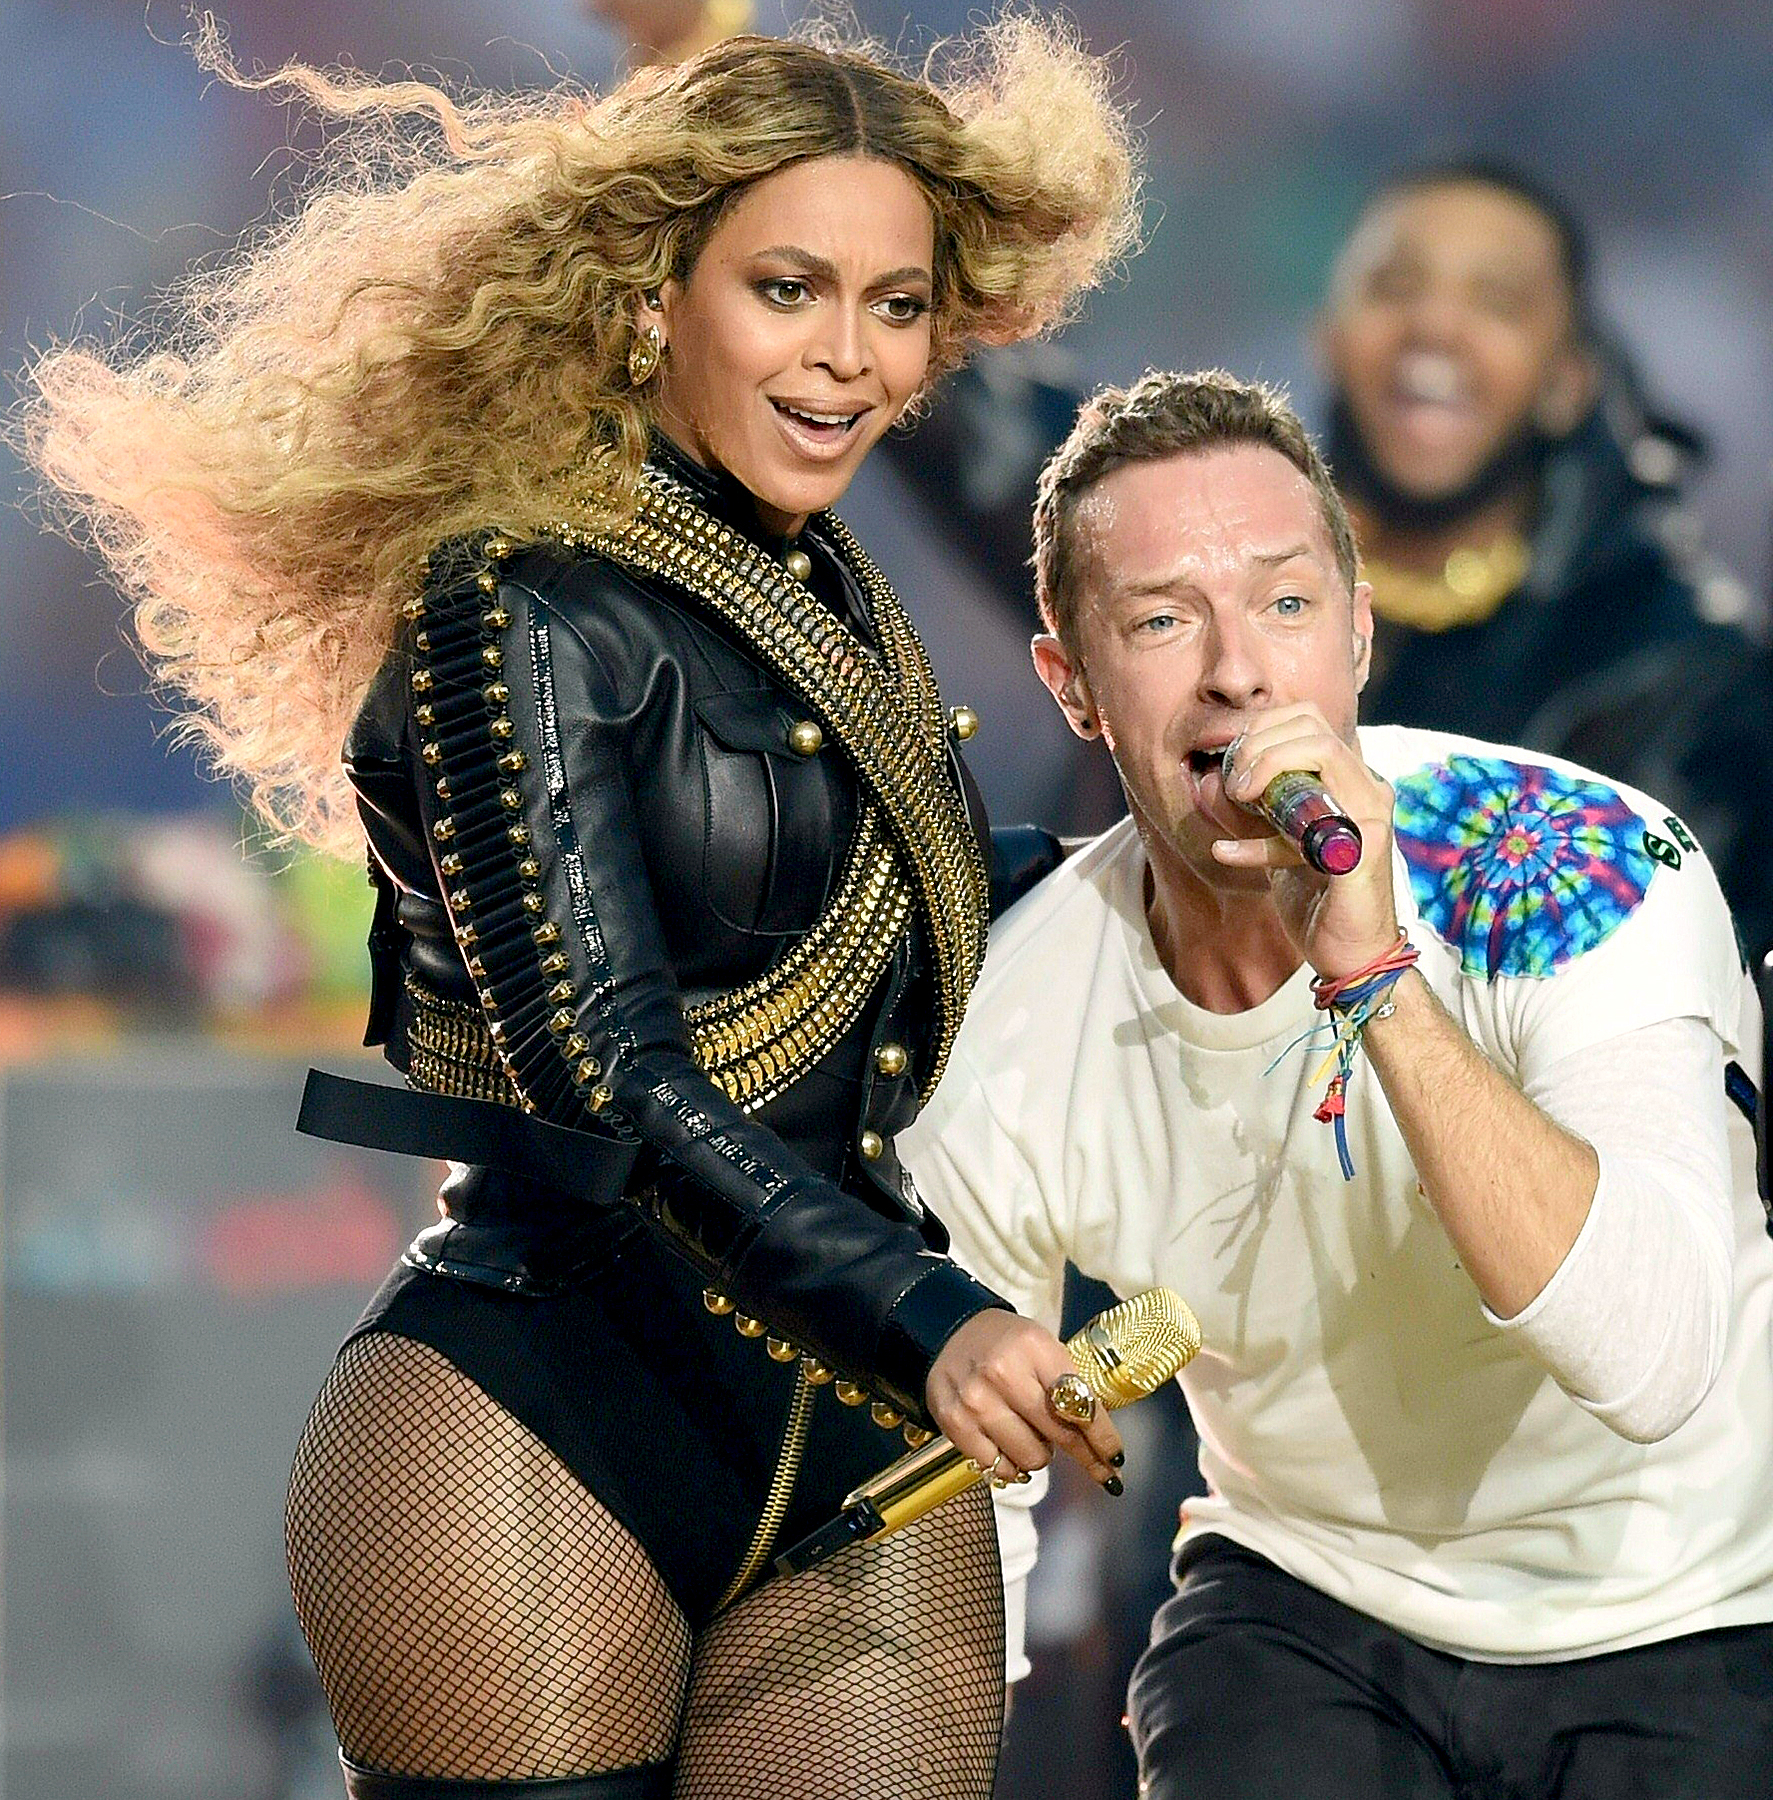 Beyonce and Chris Martin perform during Super Bowl 50.